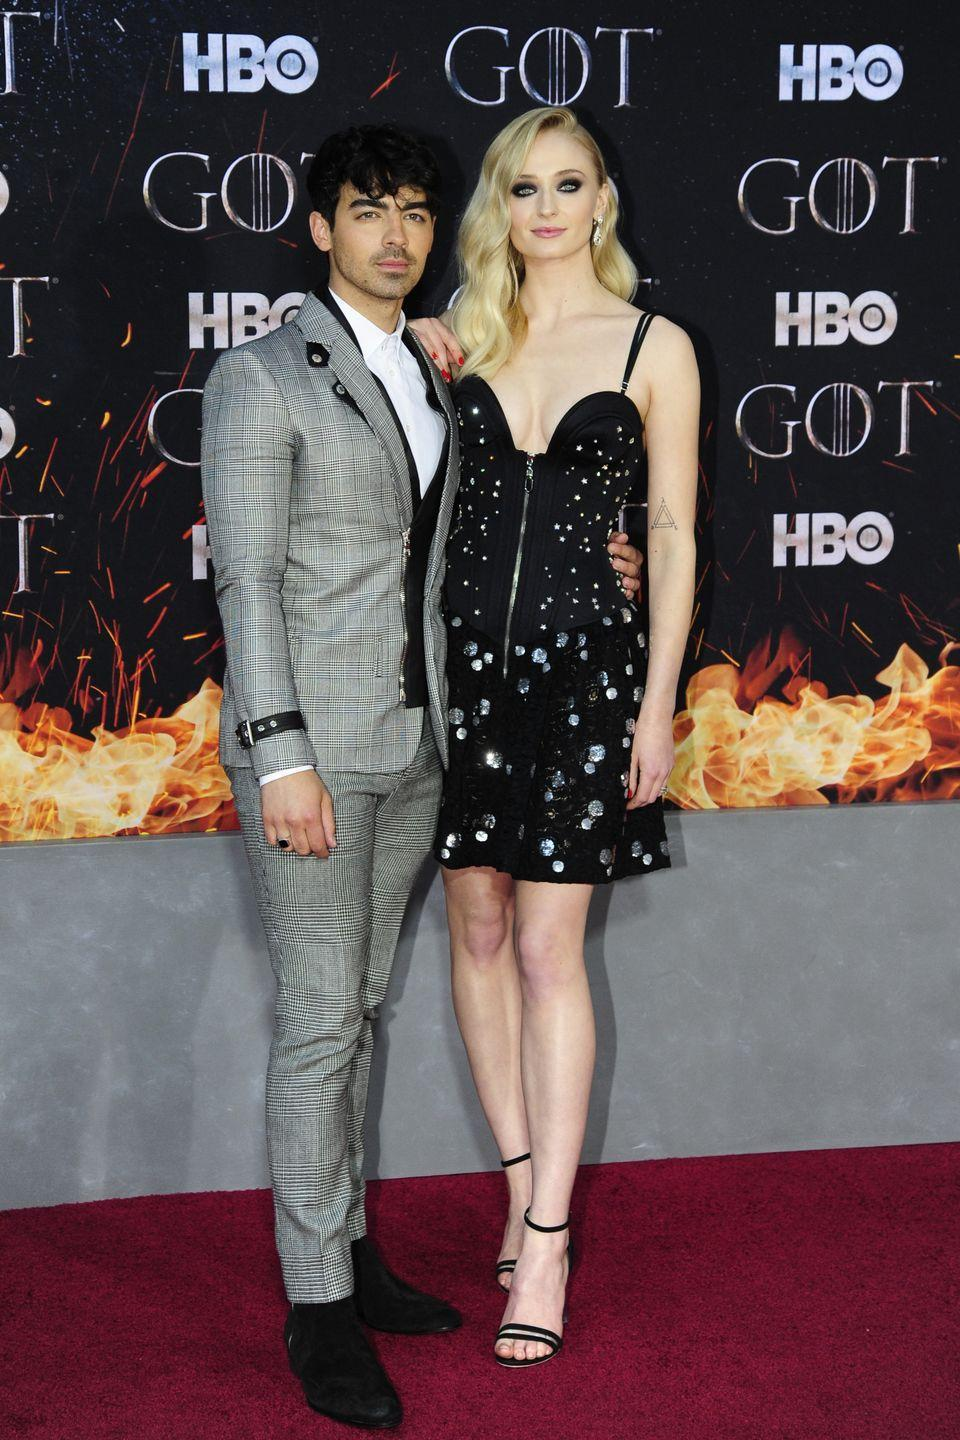 """<p>Jonas supports his then-girlfriend at the premiere for the final season of <a href=""""https://www.elle.com/uk/life-and-culture/a27623848/sophie-turner-abortion-alabama-game-of-thrones-northern-ireland/"""" rel=""""nofollow noopener"""" target=""""_blank"""" data-ylk=""""slk:her long-running how Game Of Thrones."""" class=""""link rapid-noclick-resp"""">her long-running how Game Of Thrones. </a></p>"""